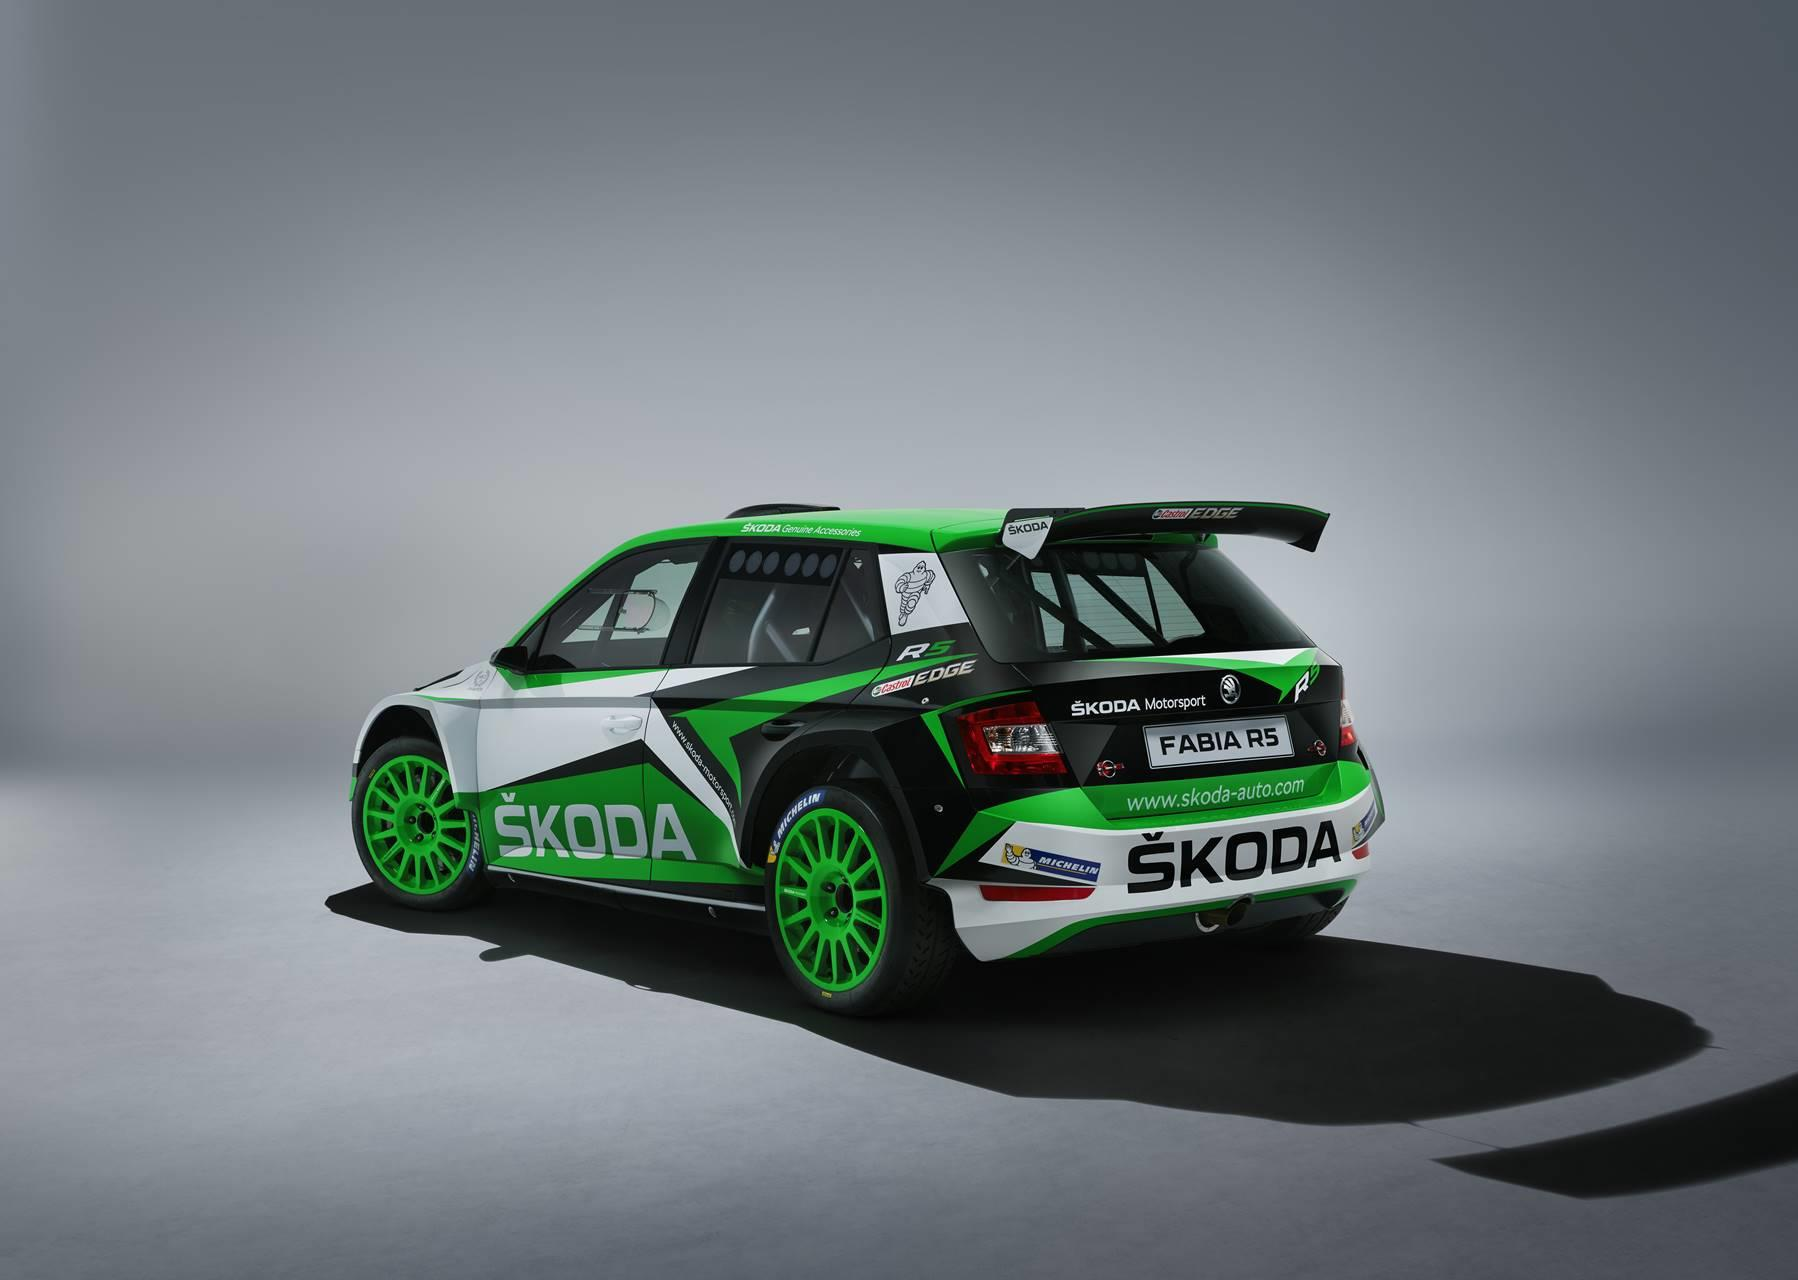 2019 Skoda Fabia R5 Concept News And Information Research And Pricing